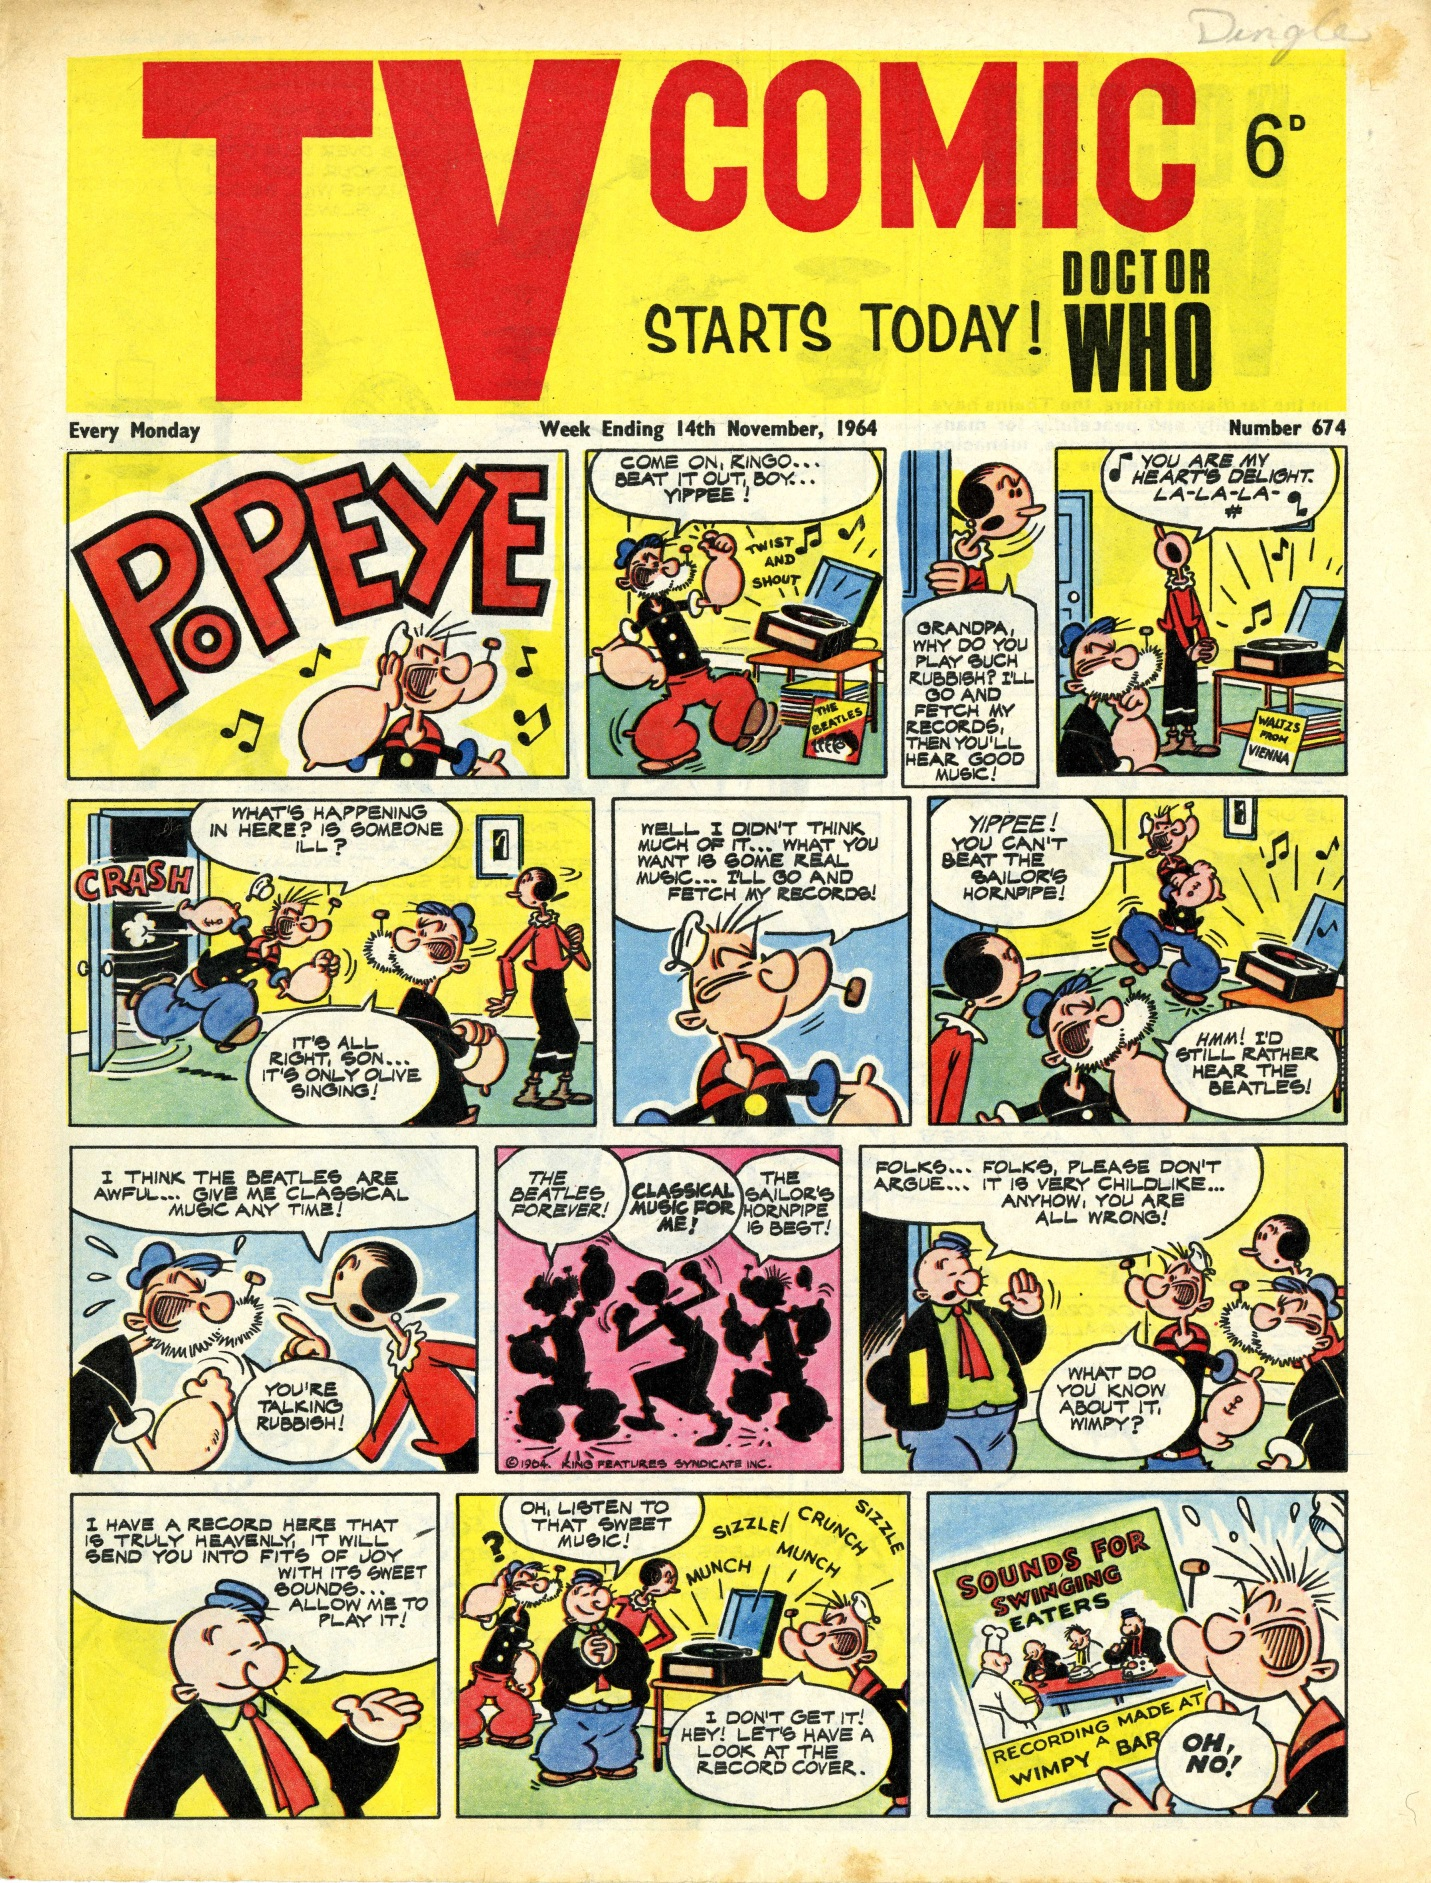 TV Comic No. 674, 14 November 1964, Polystyle Publications. The first issue to contain an official Doctor Who comic strip